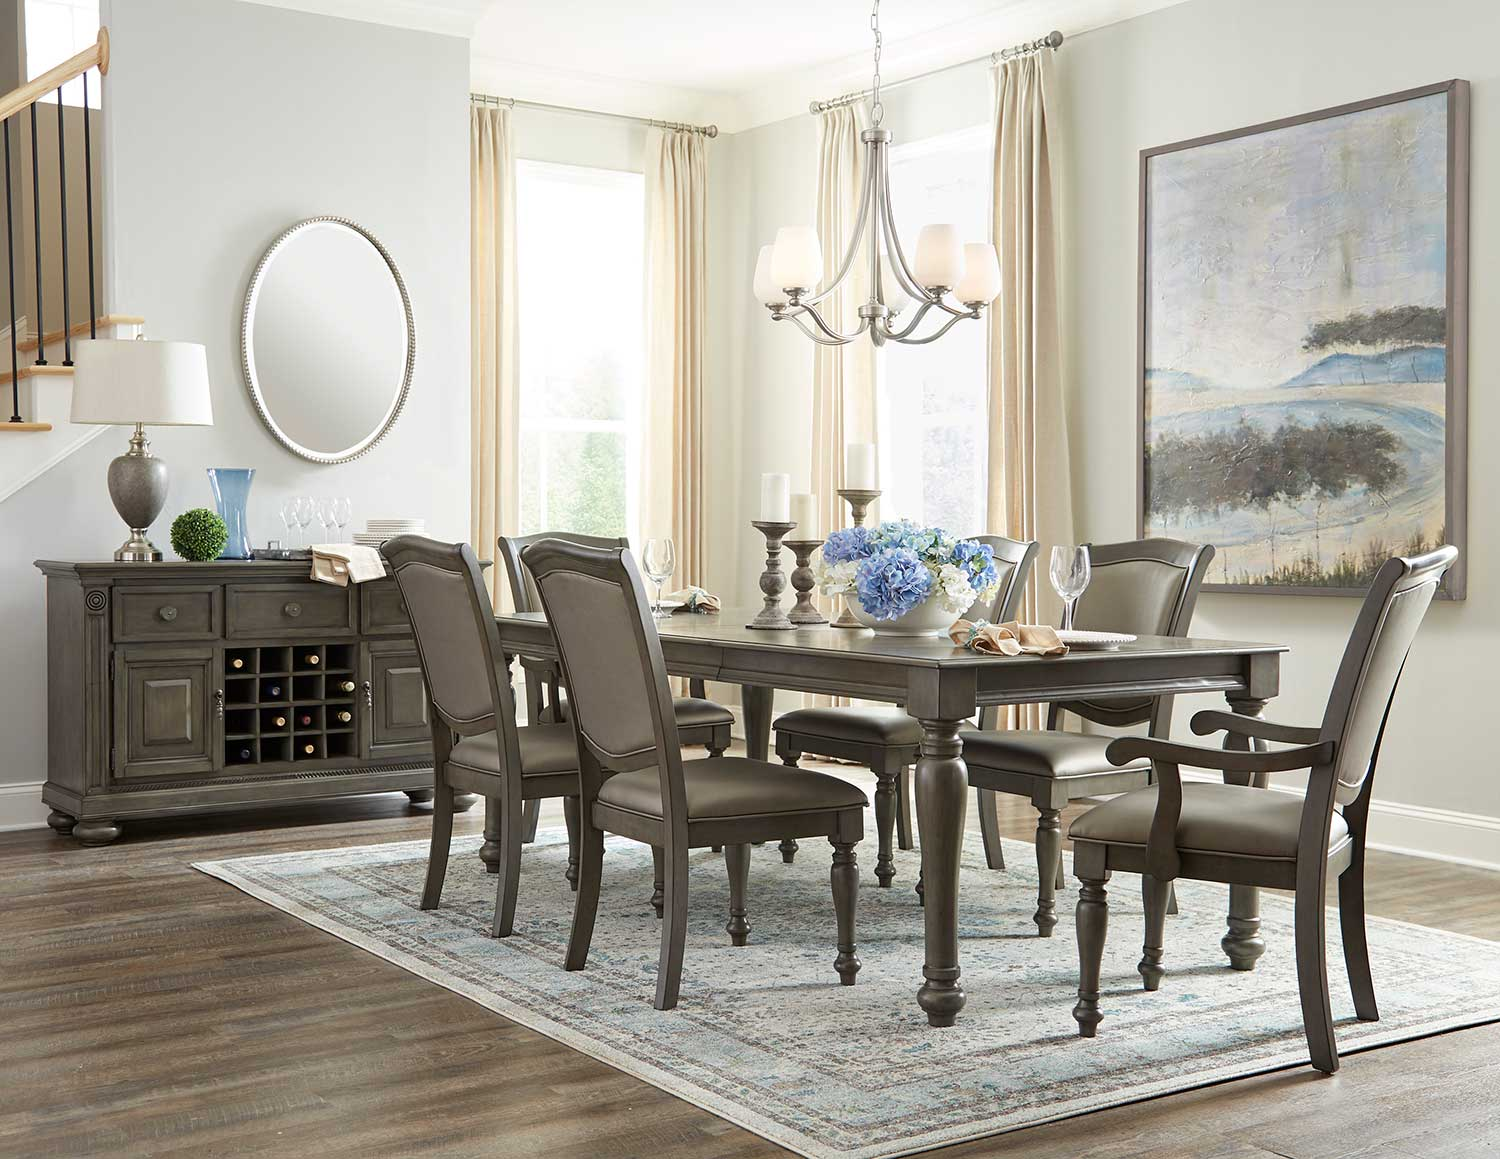 Homelegance Summerdale Dining Set - Birch veneer - Gray Bi-cast Vinyl